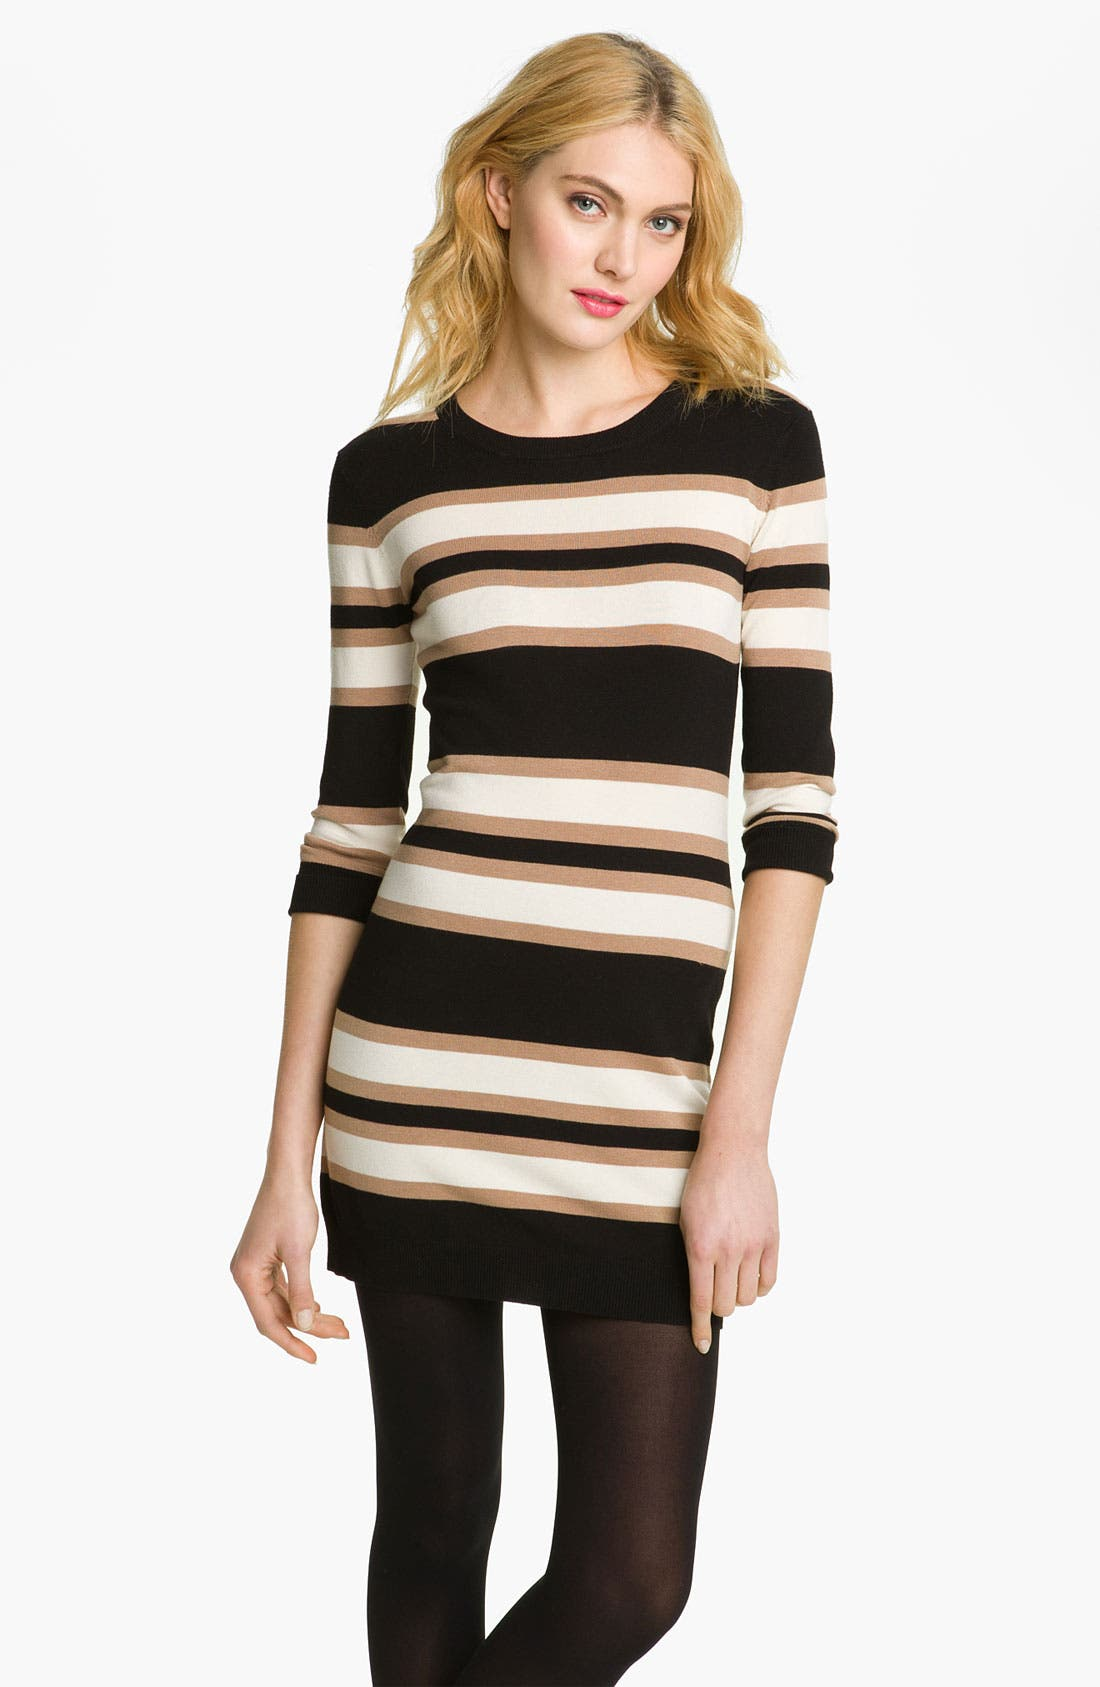 Alternate Image 1 Selected - French Connection 'Bambi Knits' Multi Stripe Sweater Dress